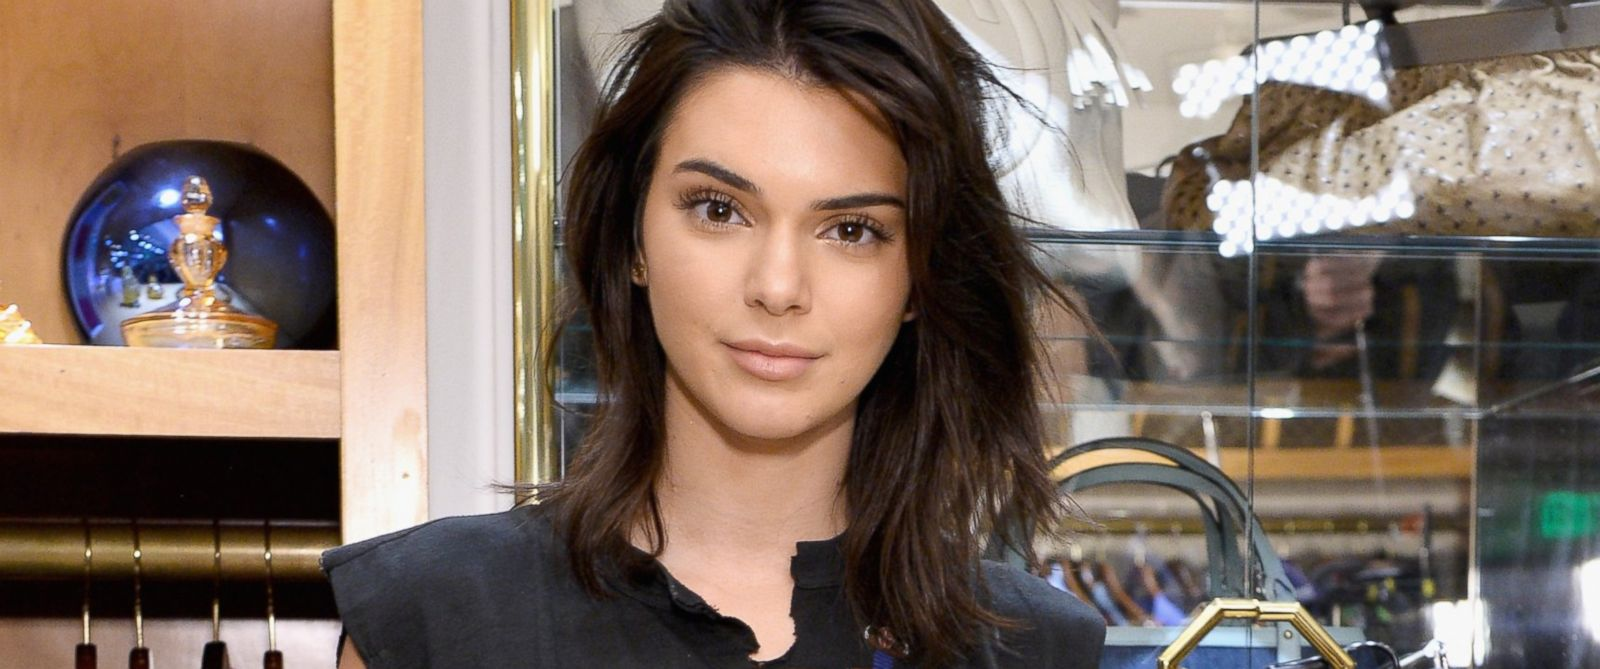 PHOTO: Model Kendall Jenner attends the What Goes Around Comes Around Beverly Hills Opening Event Oct. 13, 2016 in Beverly Hills, California.